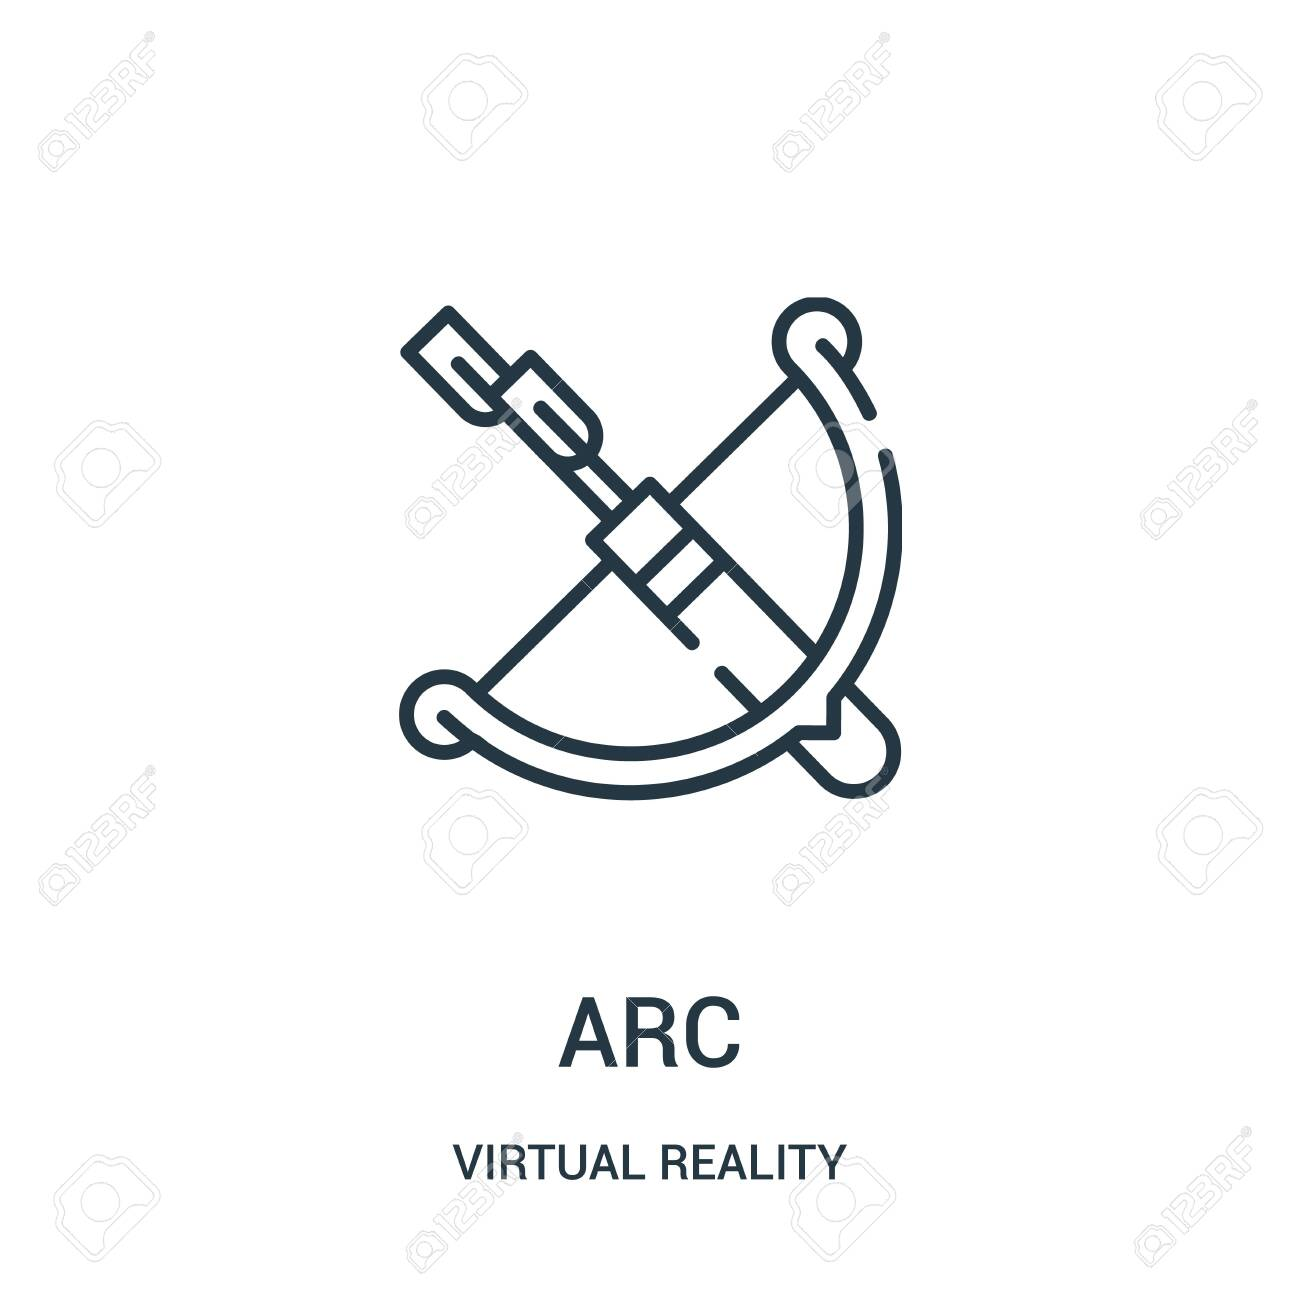 arc icon vector from virtual reality collection  Thin line arc